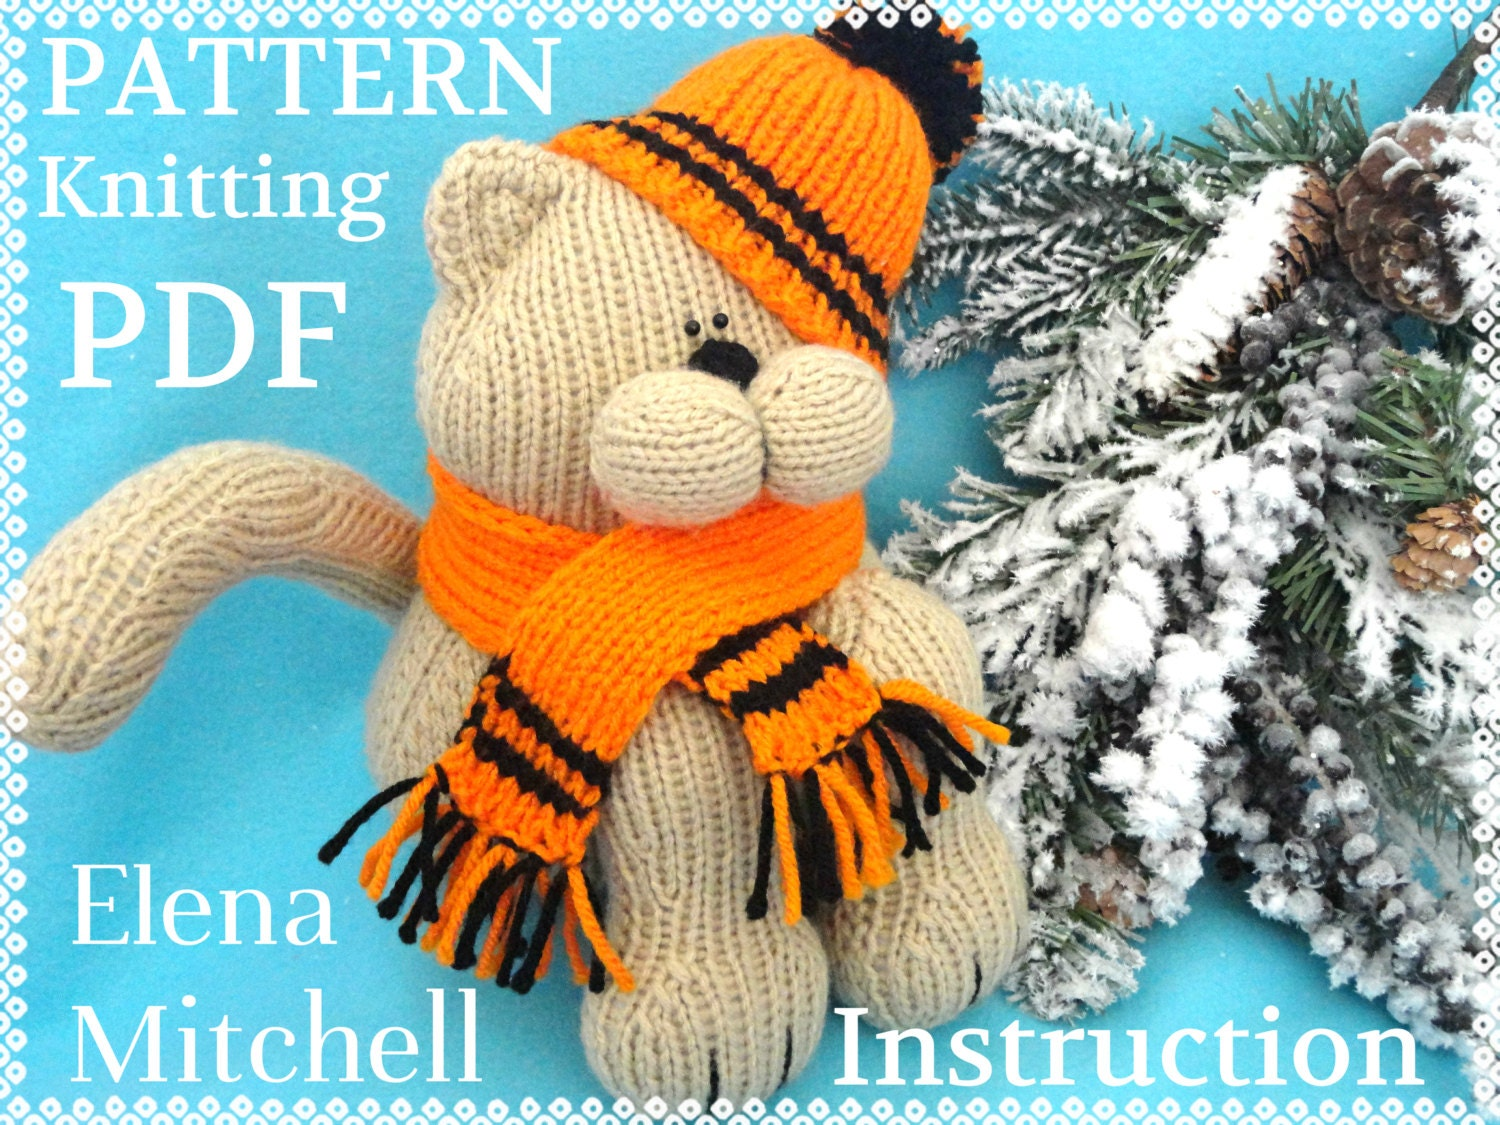 Knitting Patterns For Baby Animals : Knitting PATTERN Animal Knit Pattern Cat Animal Patterns Children Toy Knittin...